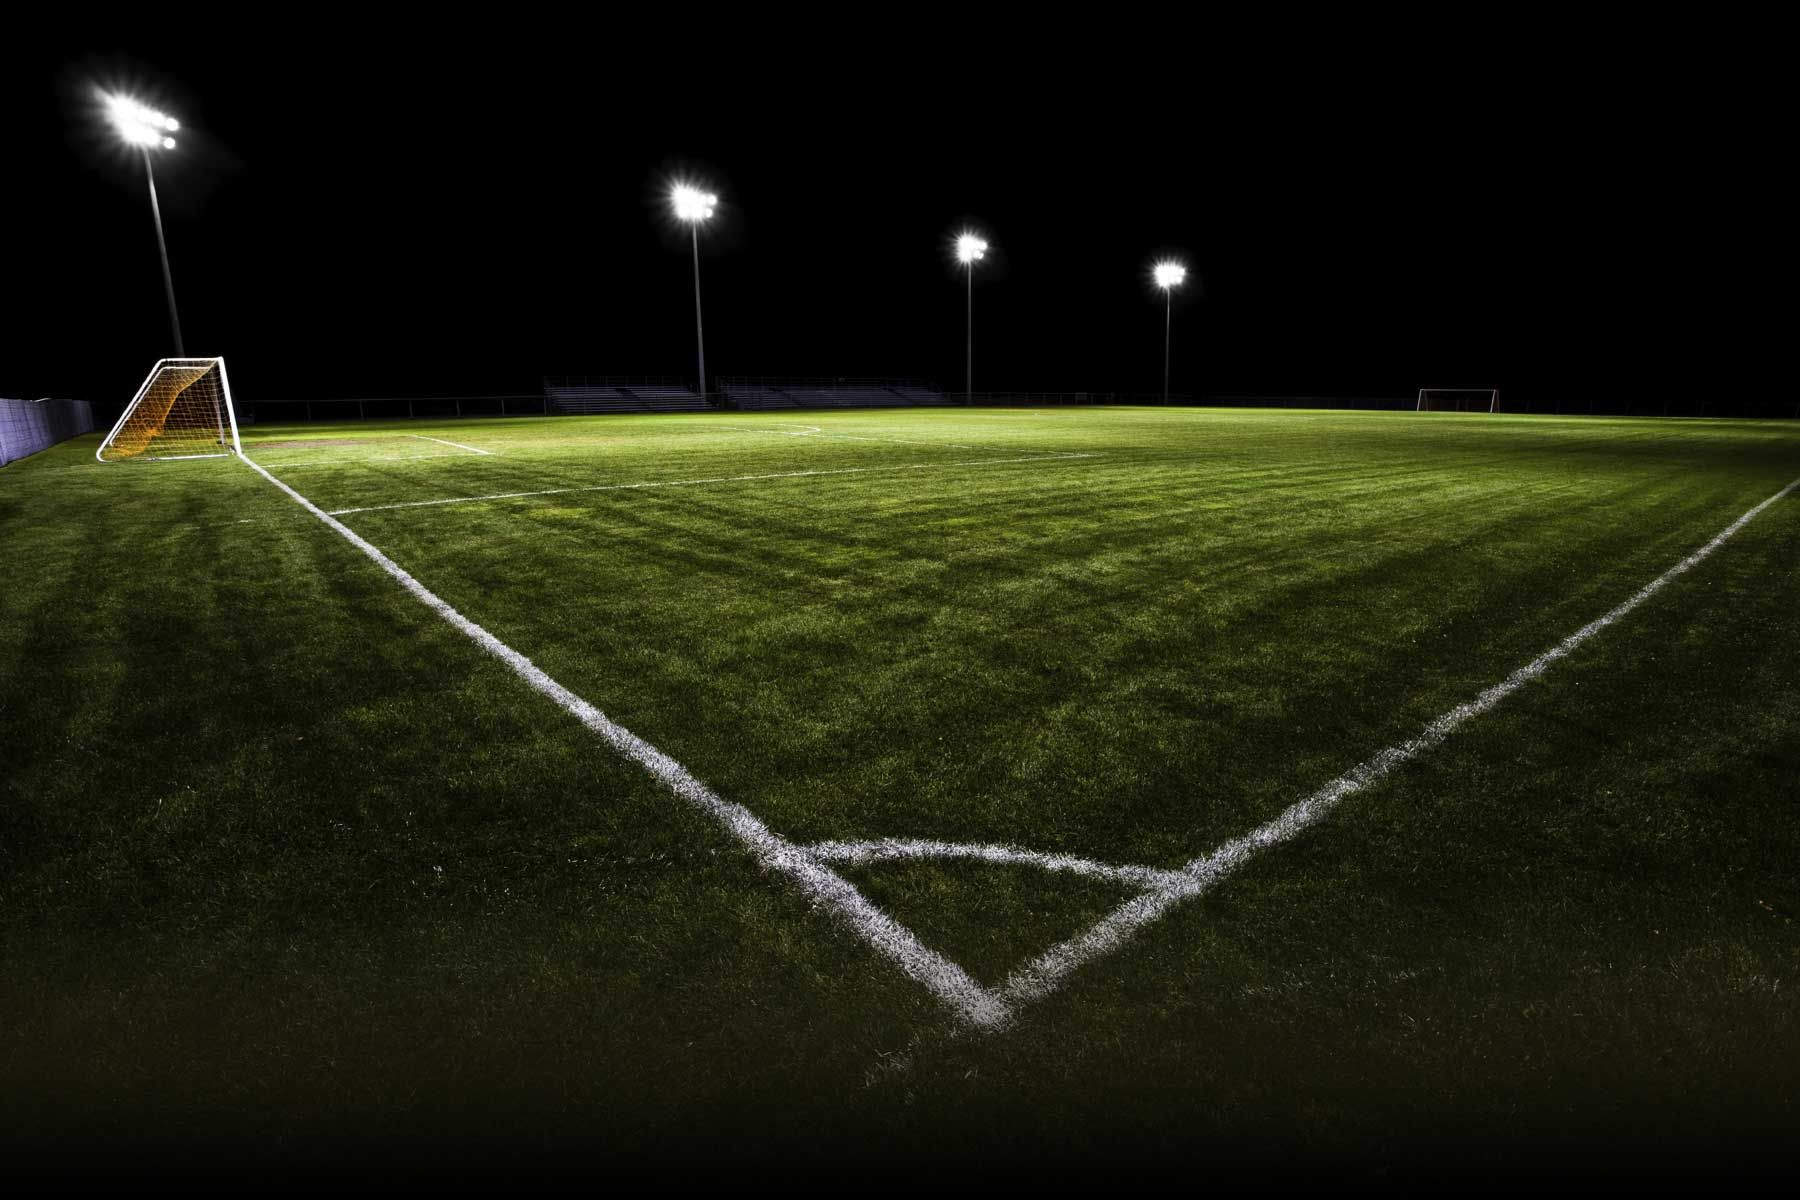 Background2 Jpg 1 800 1 200 Pixels Soccer Soccer Field Good Soccer Players